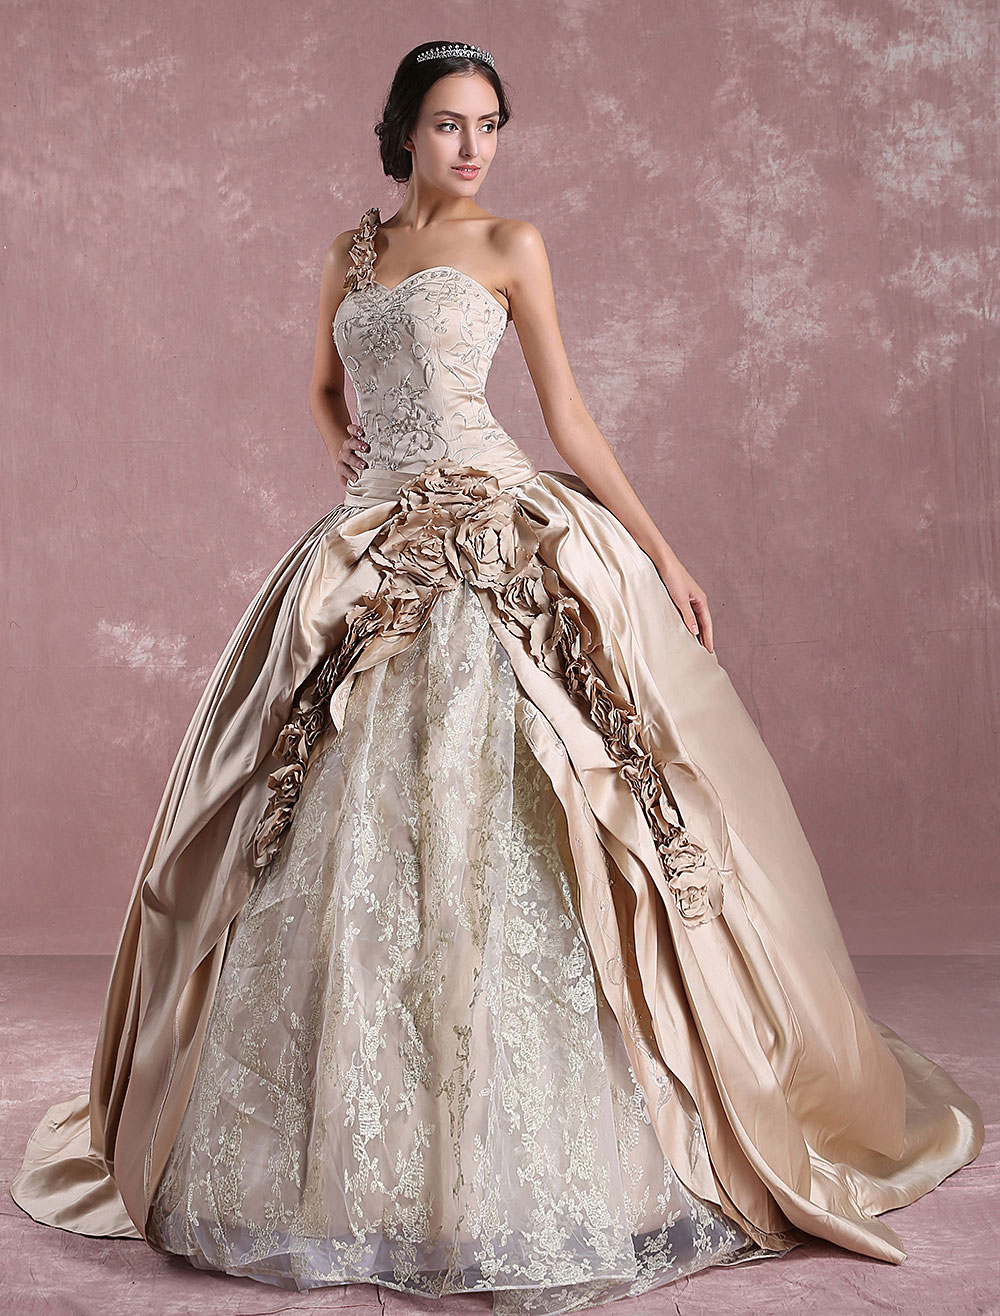 Princess Wedding Dresses Champagne Victoria Bridal Gown One Shoulder ...